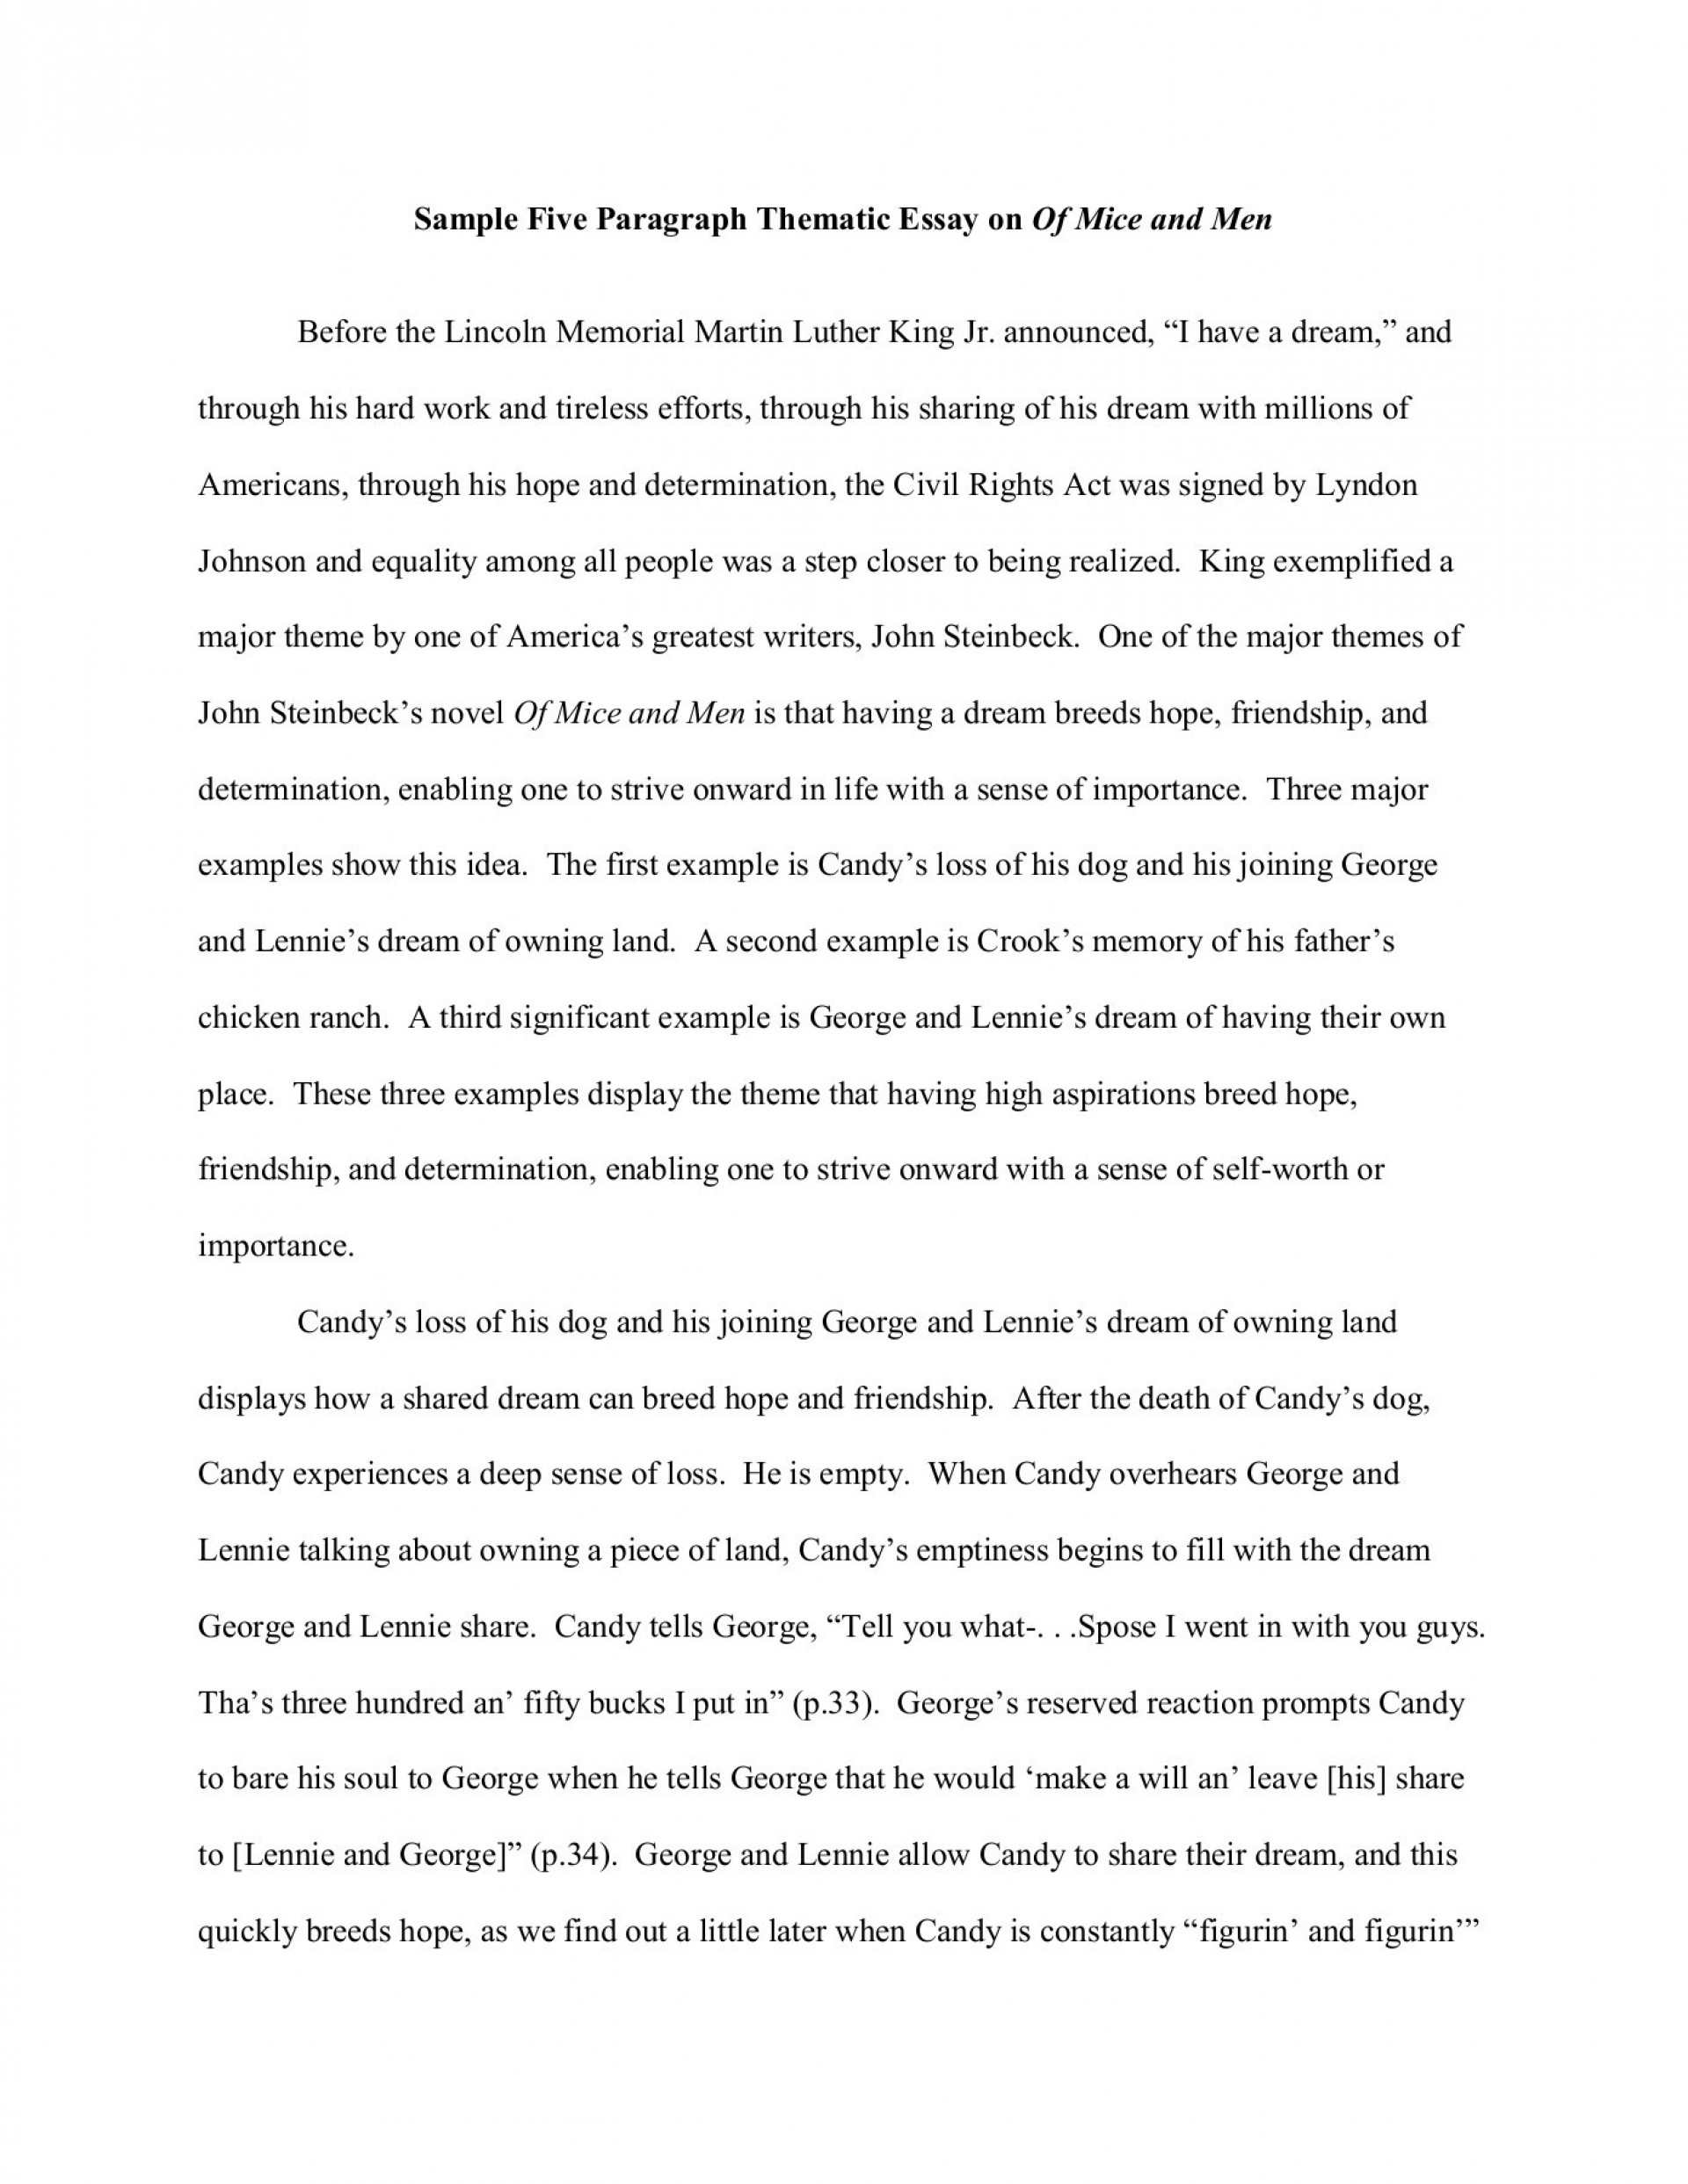 018 Of Mice And Men Essay Fearsome Prompts 1920